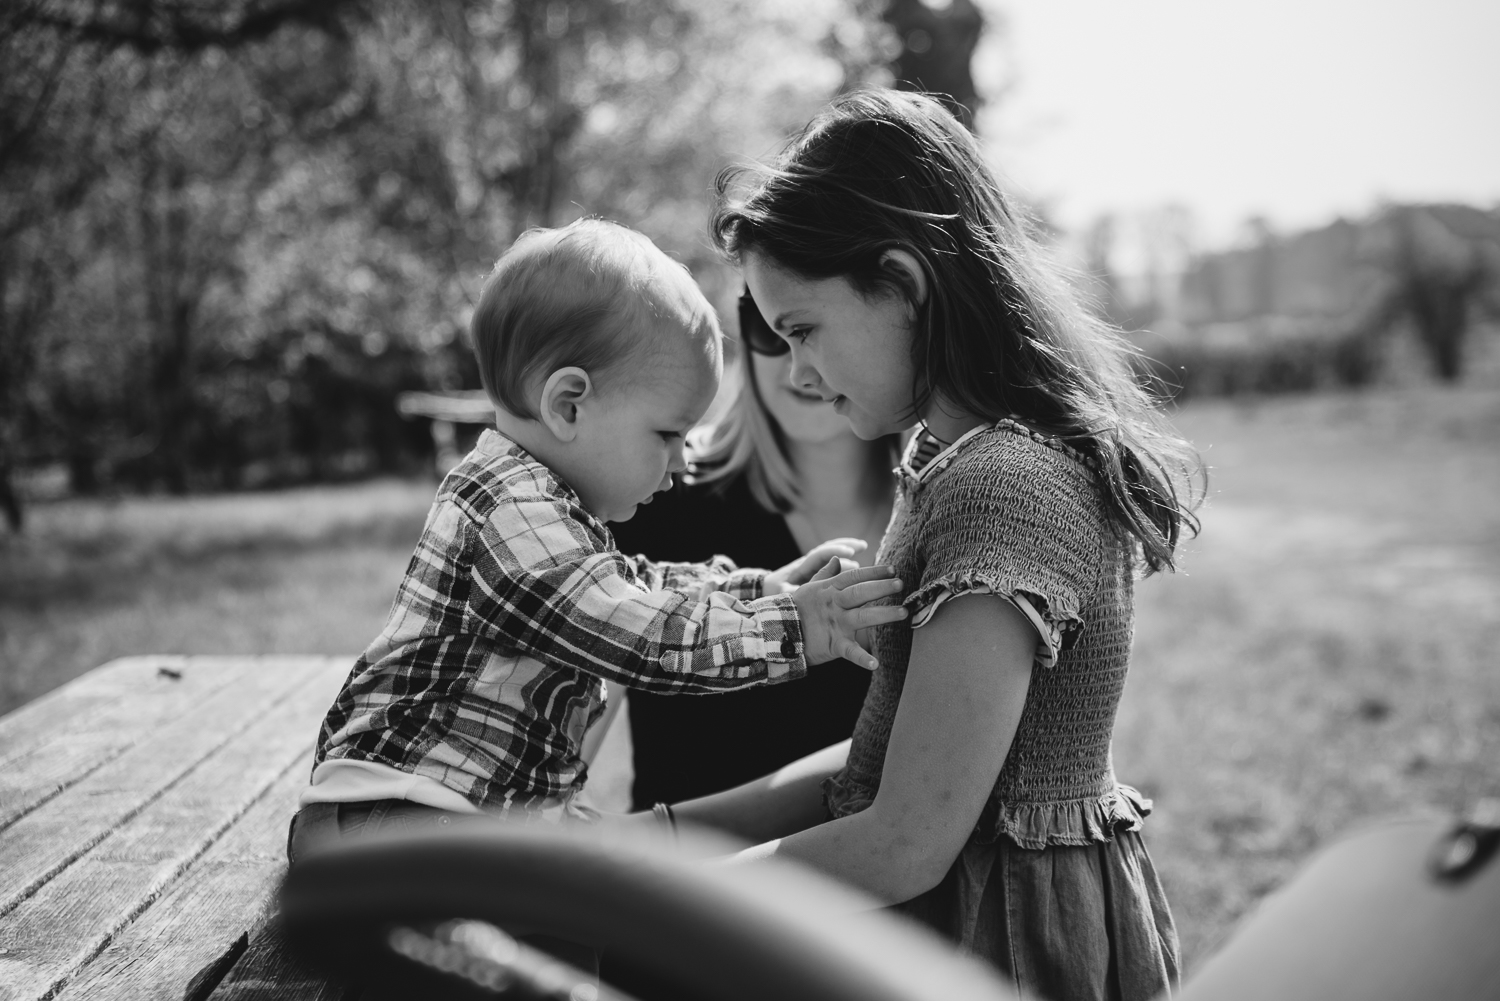 A baby reaching out to cling onto his cousin in a family photography session in Cambridge